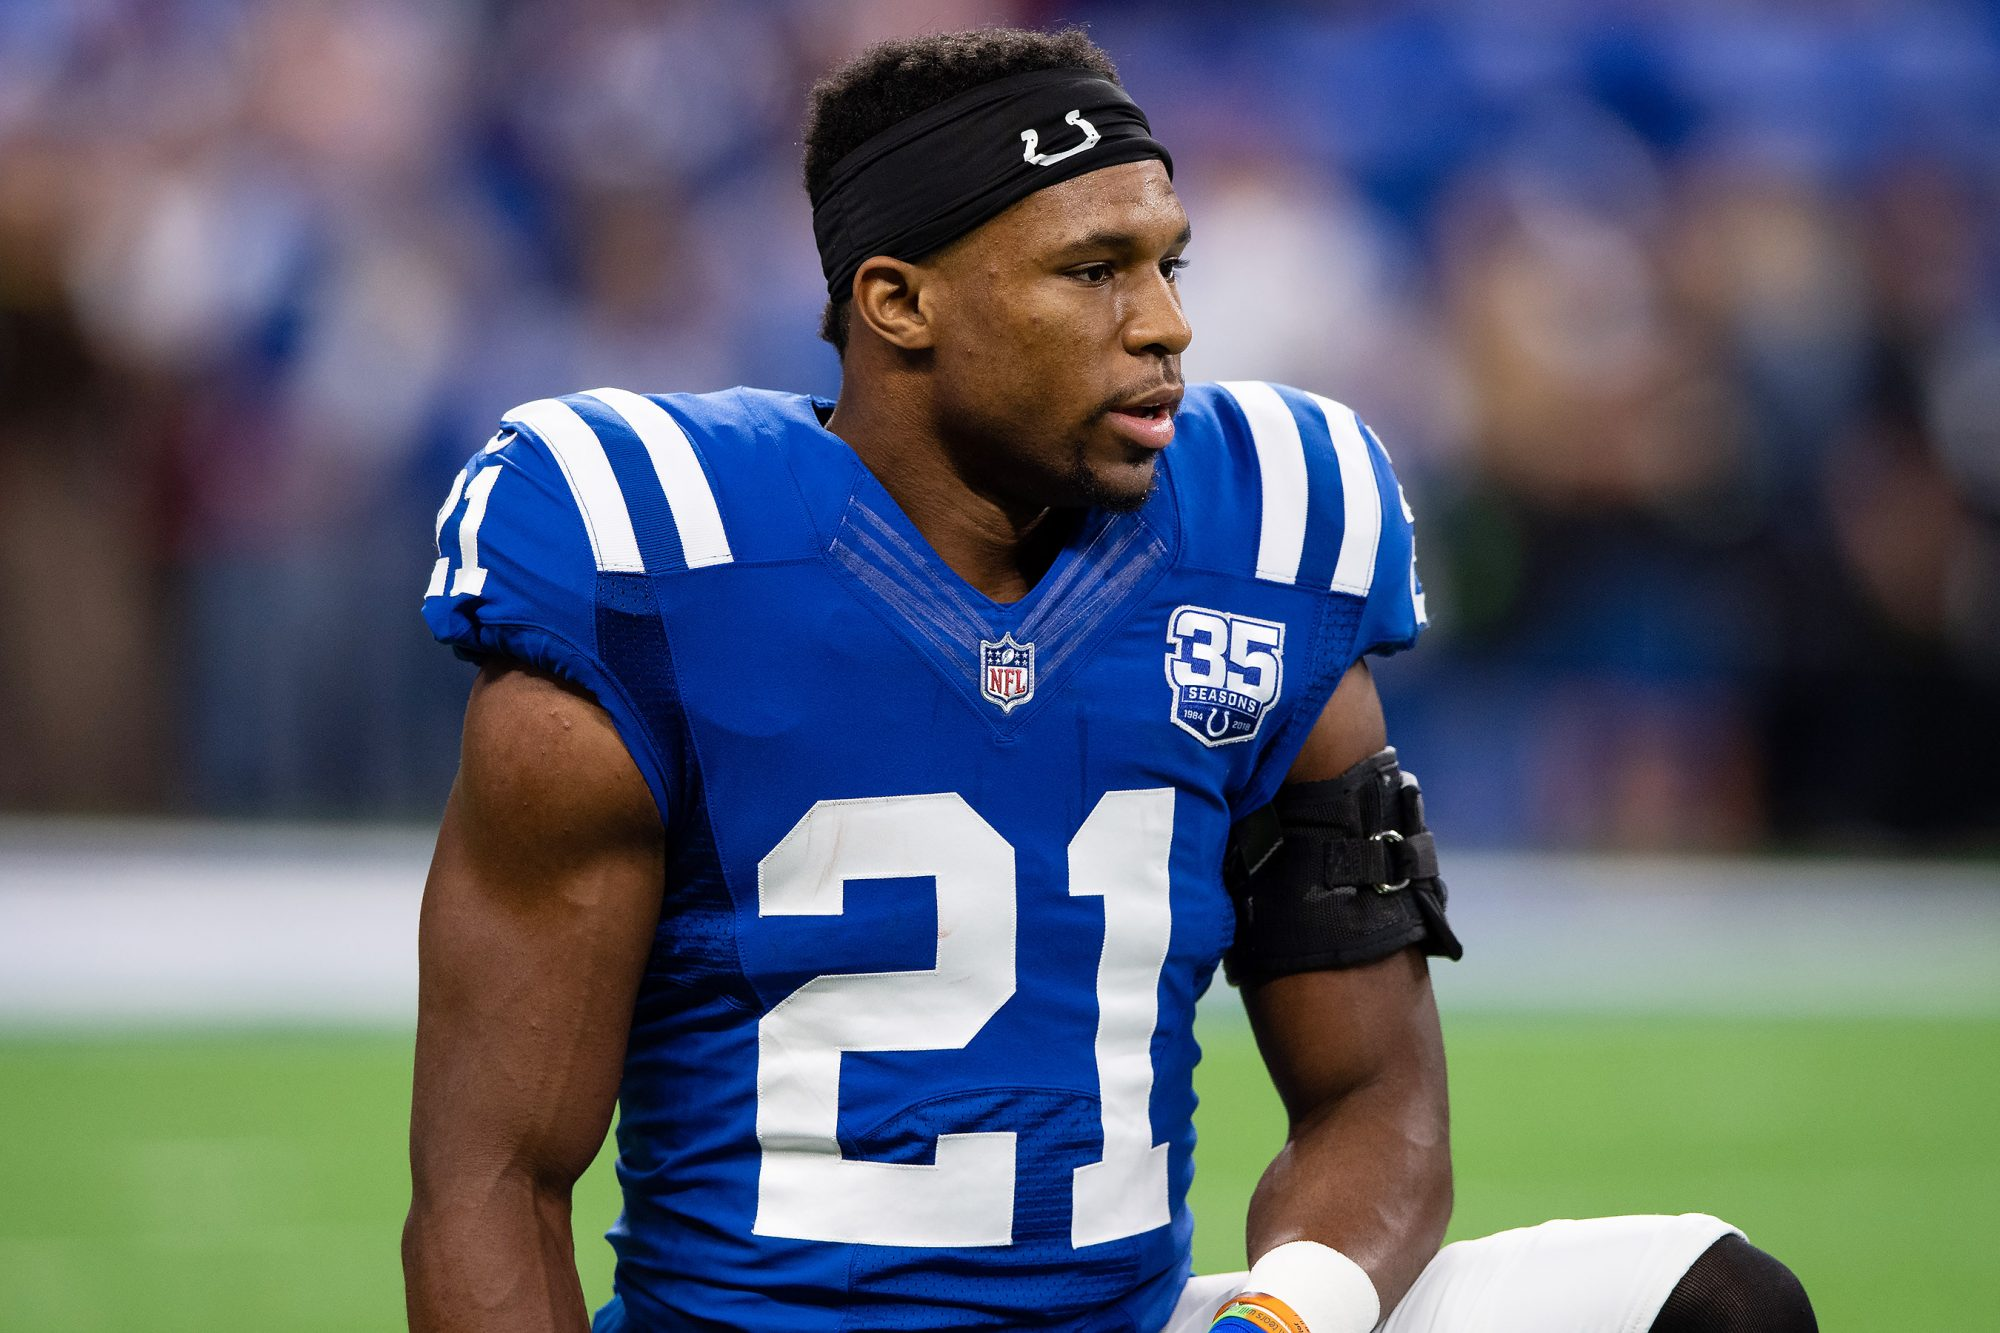 NFL Star Nyheim Hines Spends His Bye Week Working at Bojangles Despite $400K Salary — Here's Why nyheim-hines